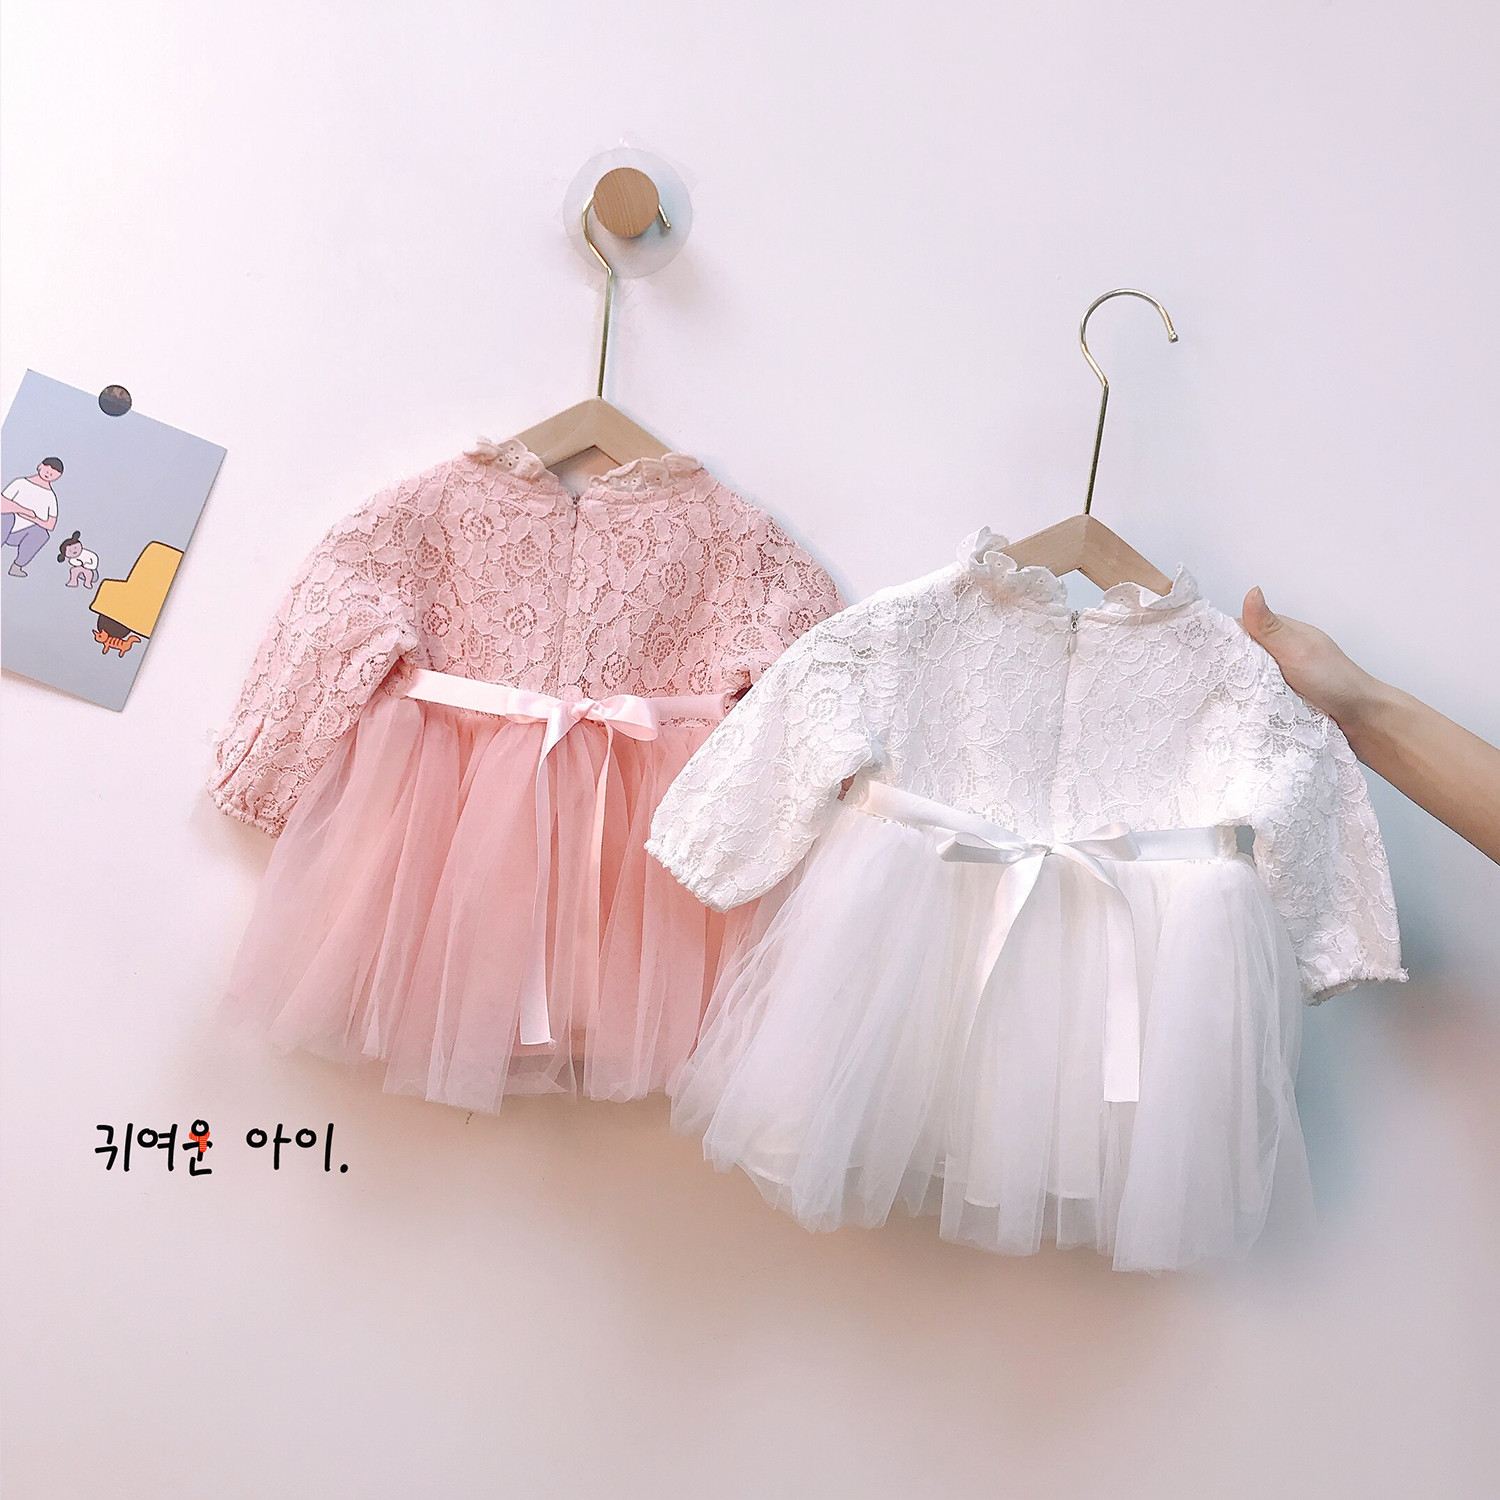 Girls dress spring and autumn long-sleeved lace mesh embroidery skirt girl baby princess dress children's dress with hood